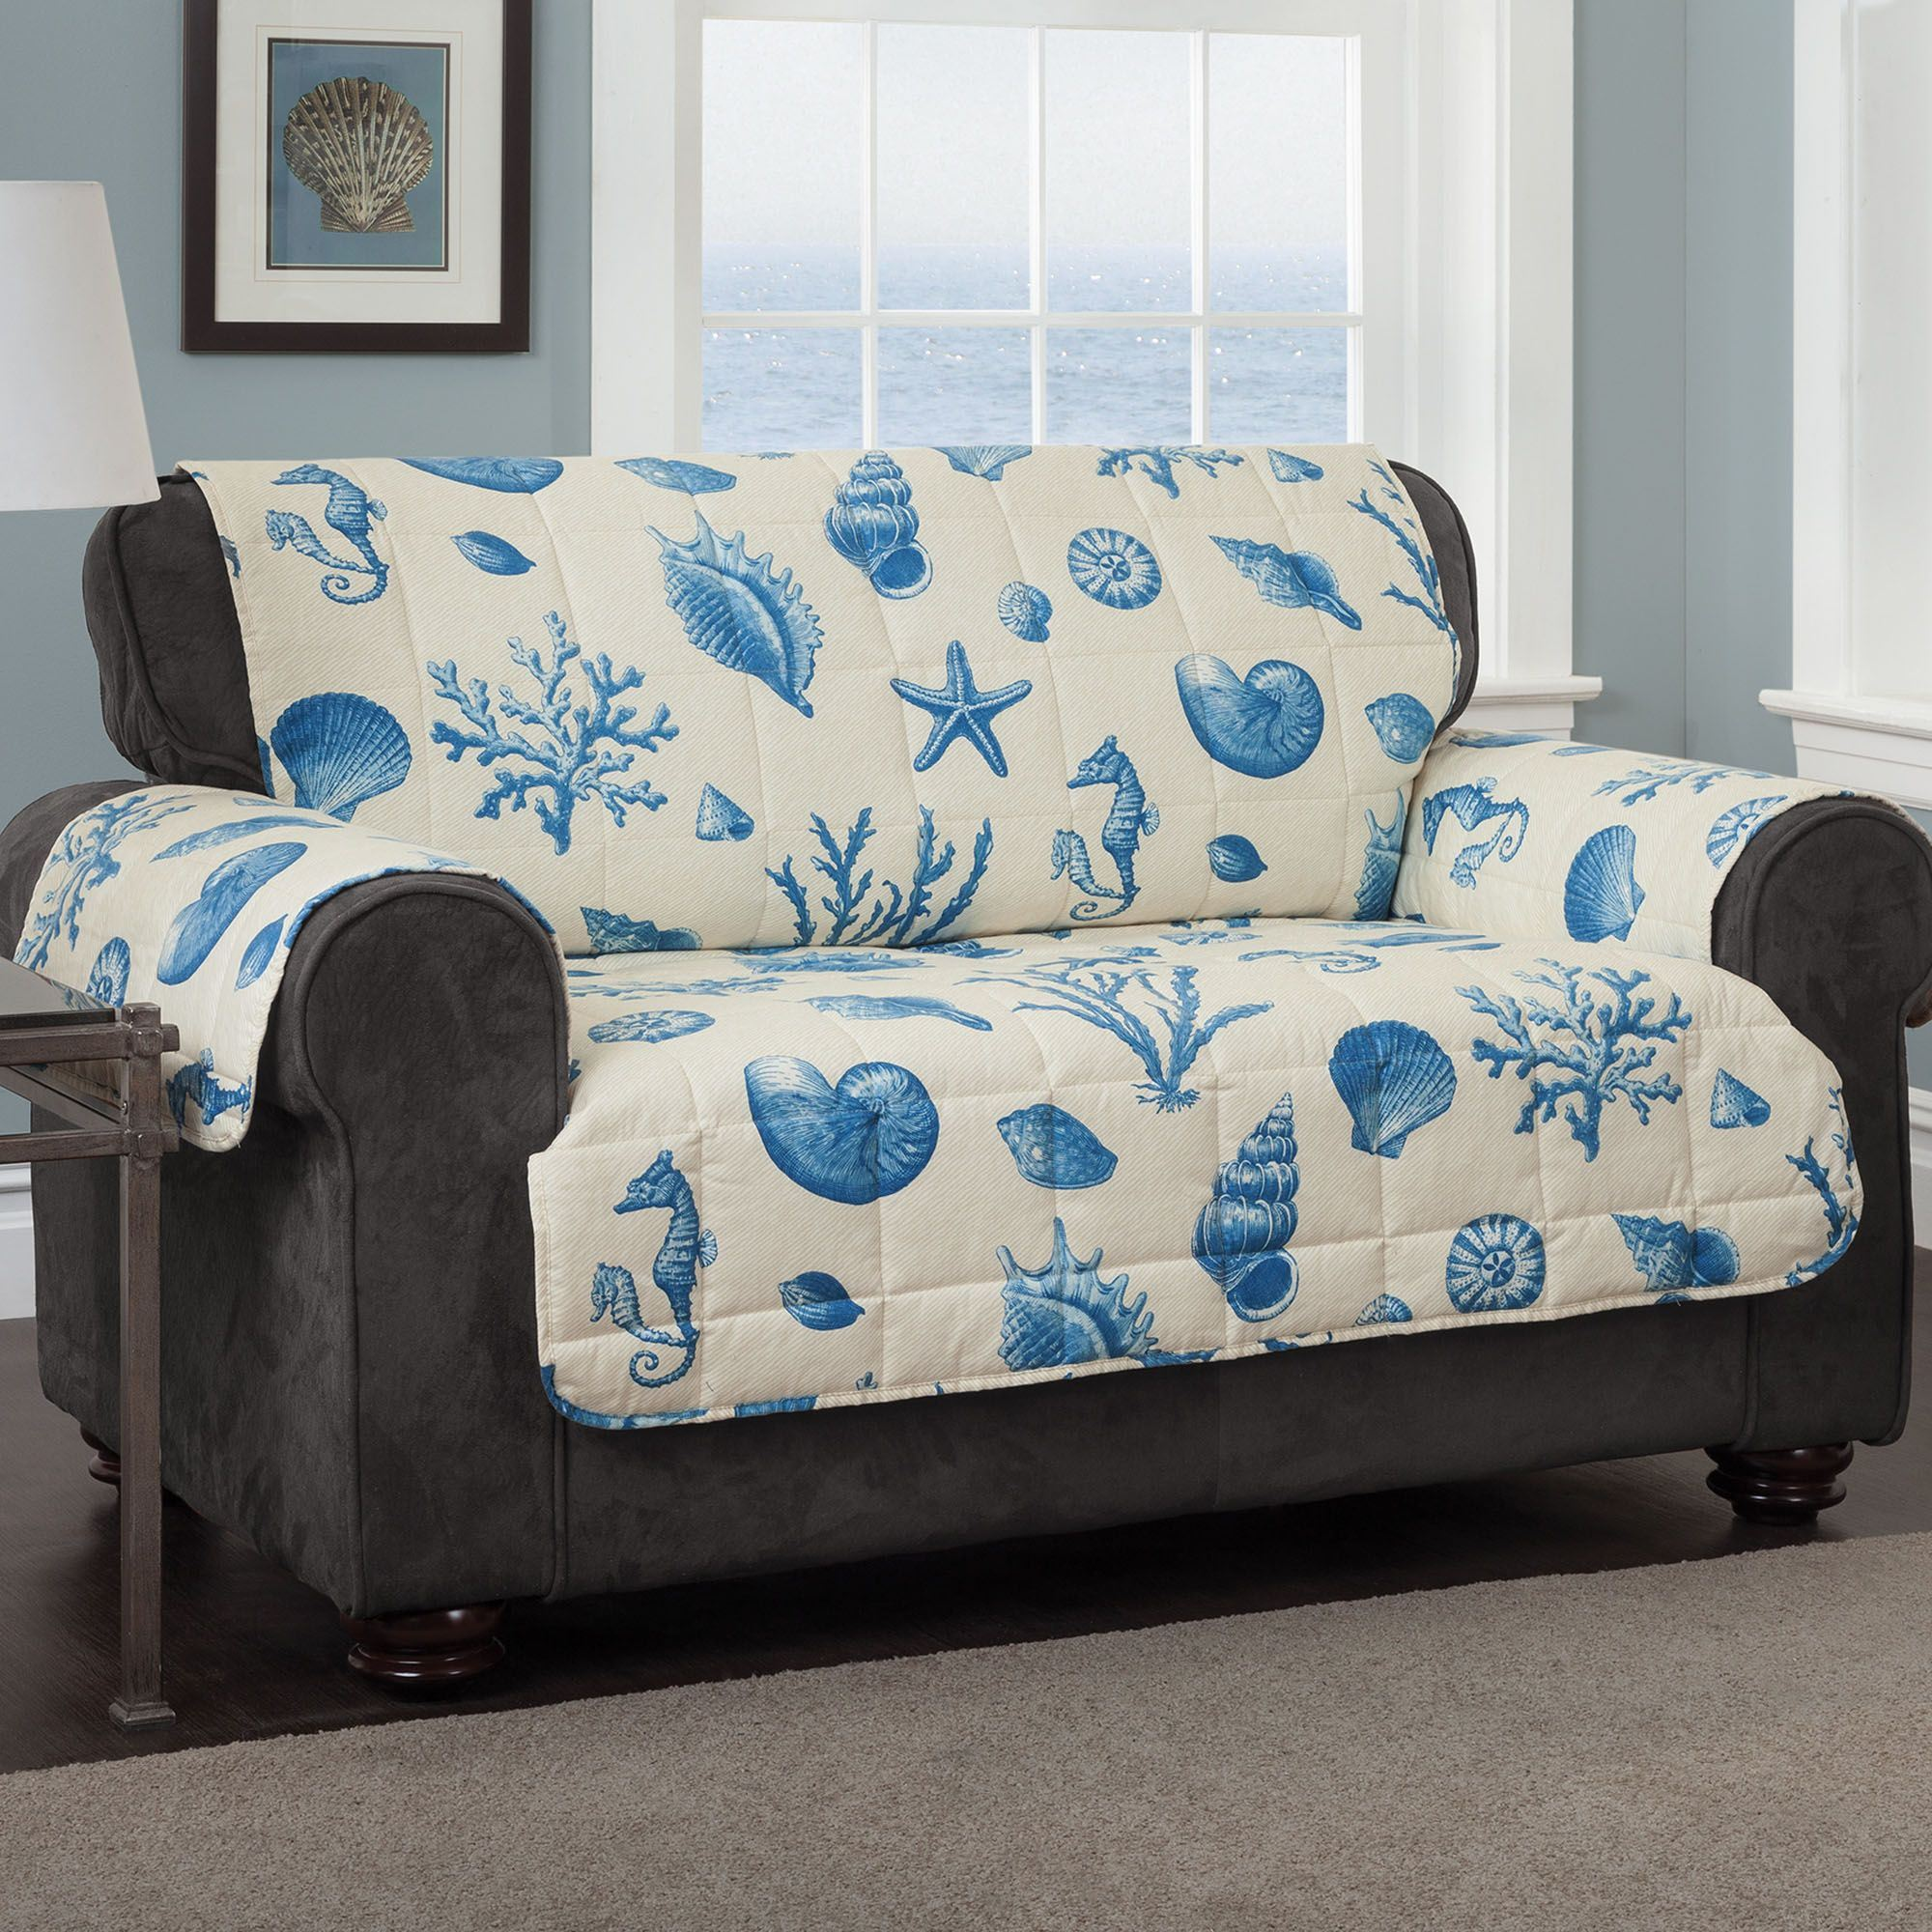 navy blue pet sofa cover steel set coimbatore furniture protector sure fit deluxe thesofa